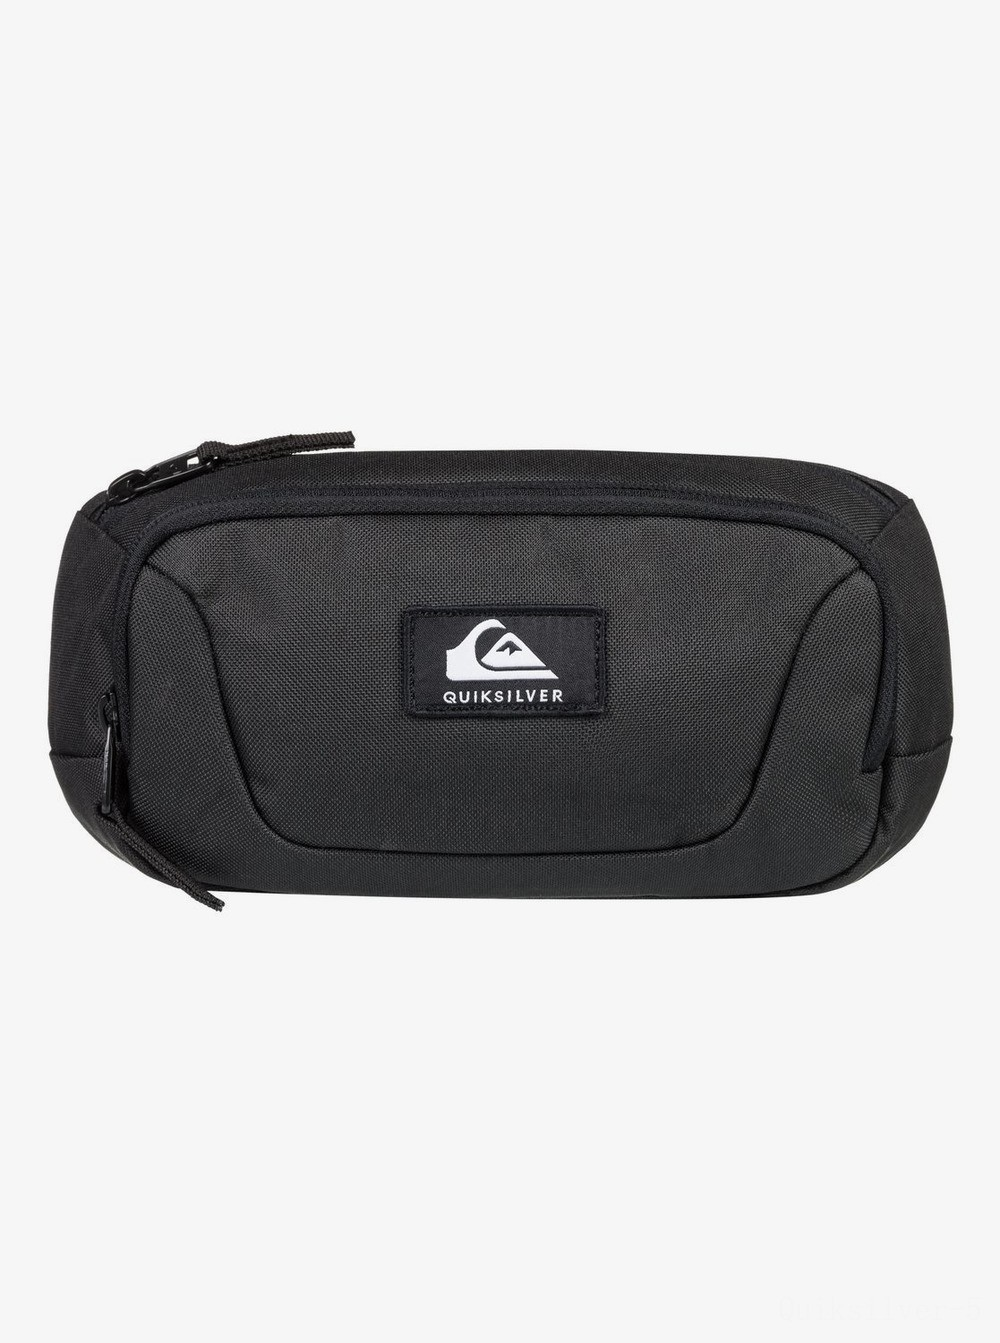 limited sale jungler fanny pack - bachelor button best price last chance